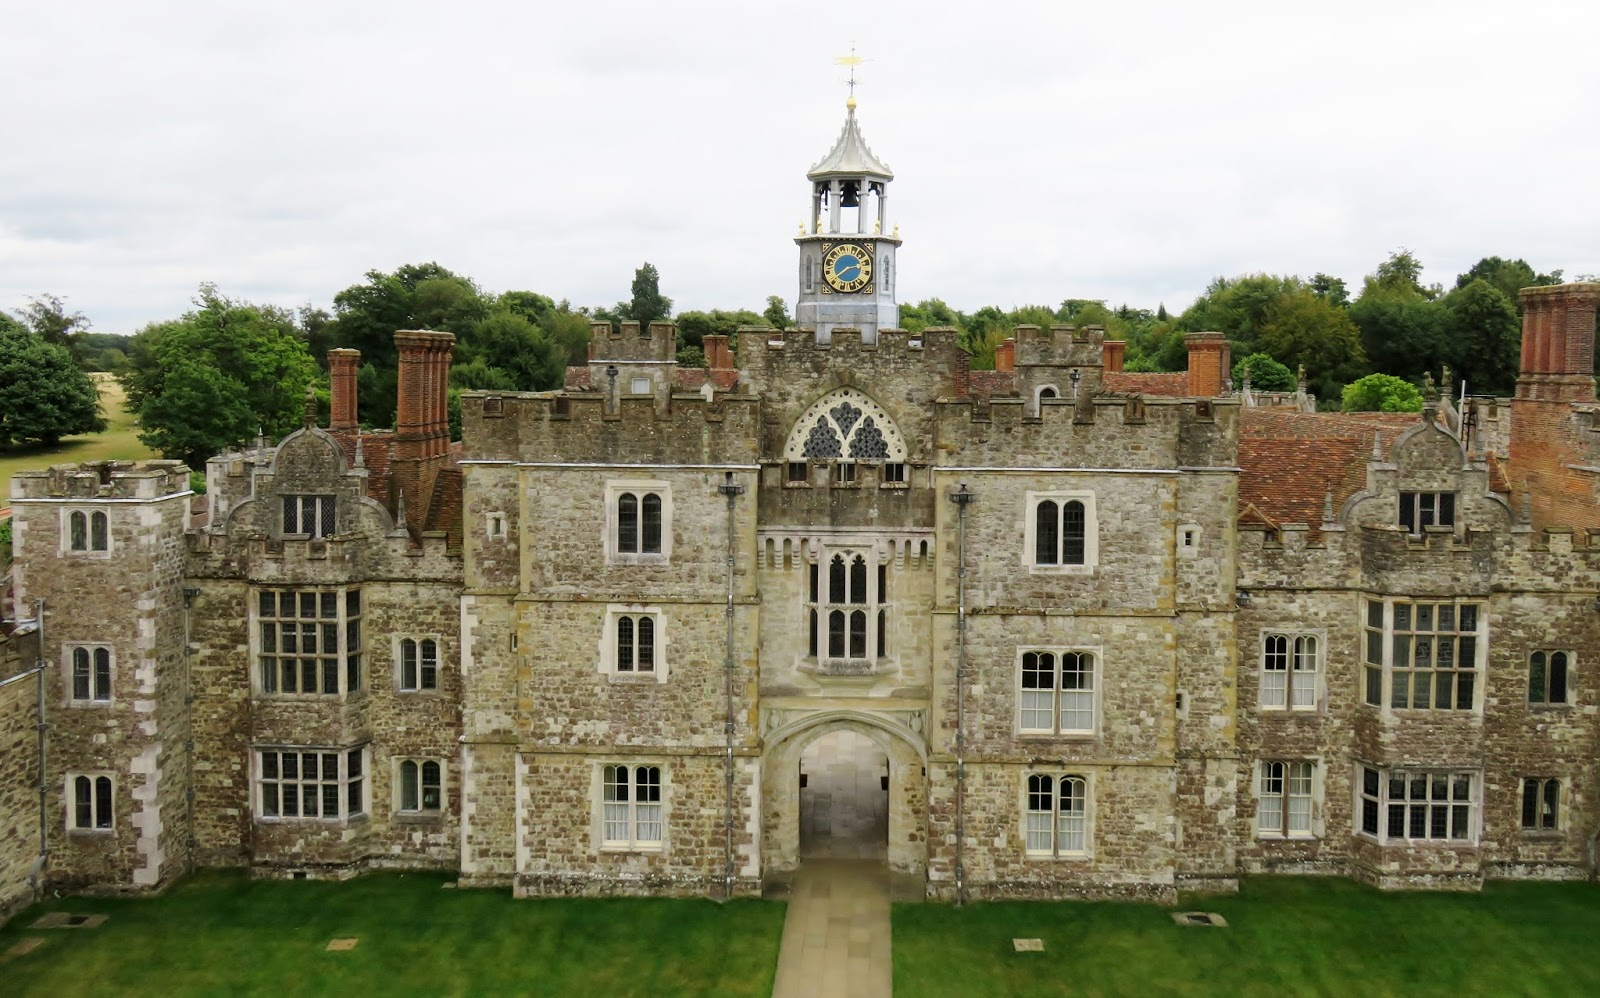 Knole House, Sevenoaks – and meeting a Battleaxe fan!